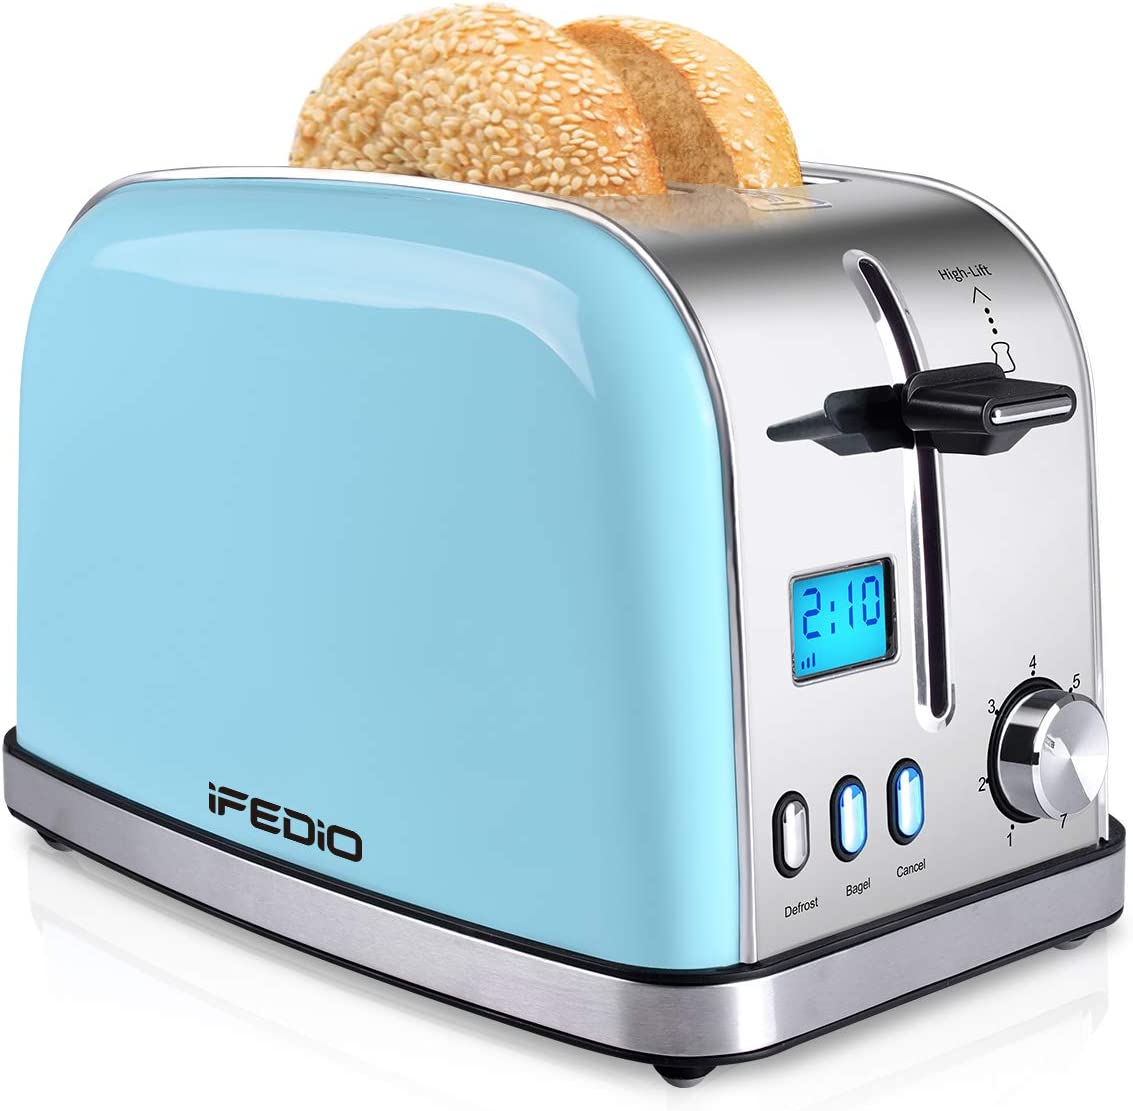 Toaster 2 Slice, Best Rated Prime 2 Slice Toaster [LCD Display], Stainless Steel Compact Bread Toasters Wide Slots Pop Up Bagel/Cancel/Defrost Function, Removable Crumb Tray Toaster (900W, Blue)